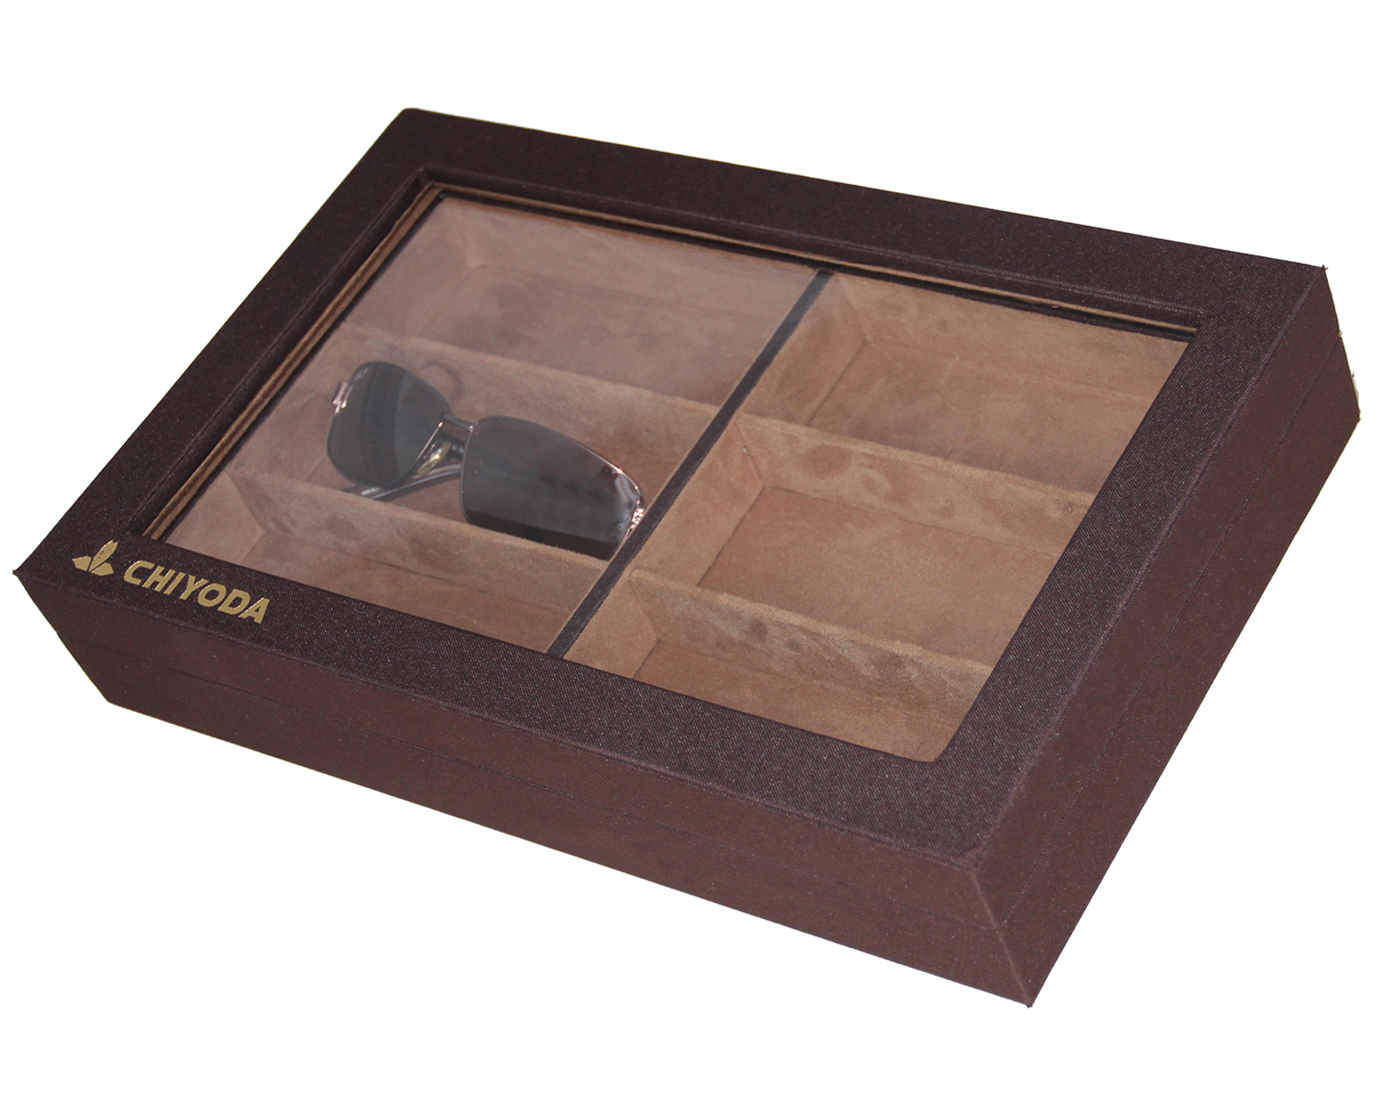 CHIYODA 6 Grid Eyeglasses Sunglasses Storage Case Holder Jewel Display Case Radiata Pine Box Organizer